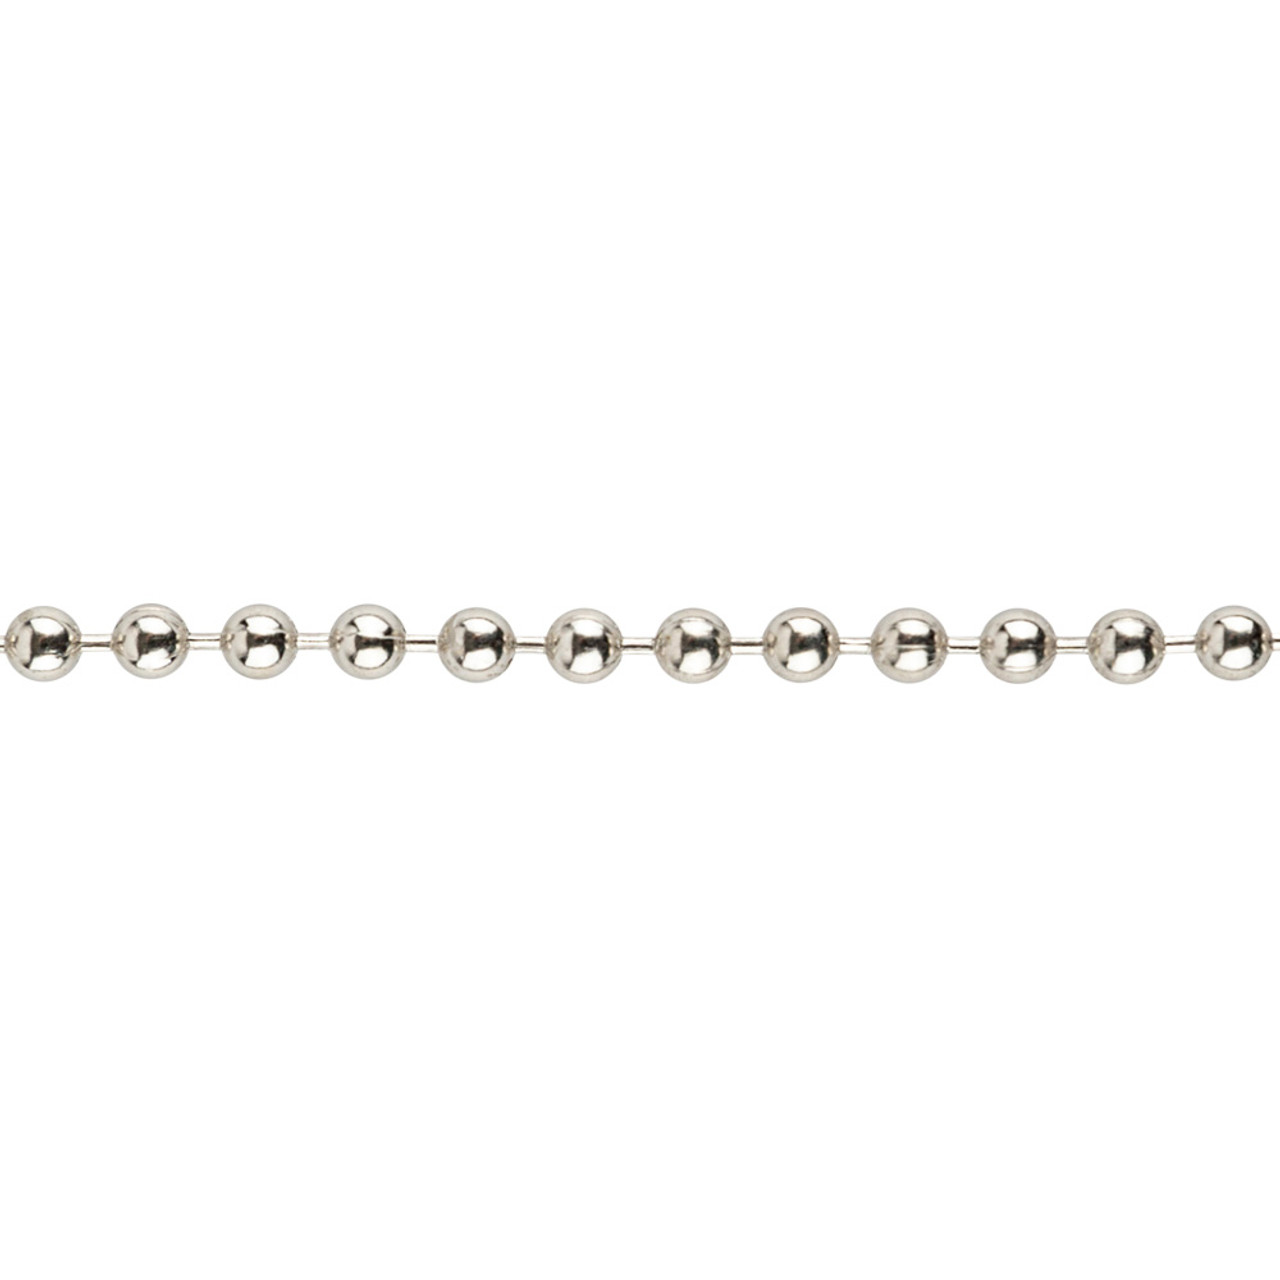 Close up shot of the #6 nickel plated steel ball chain.